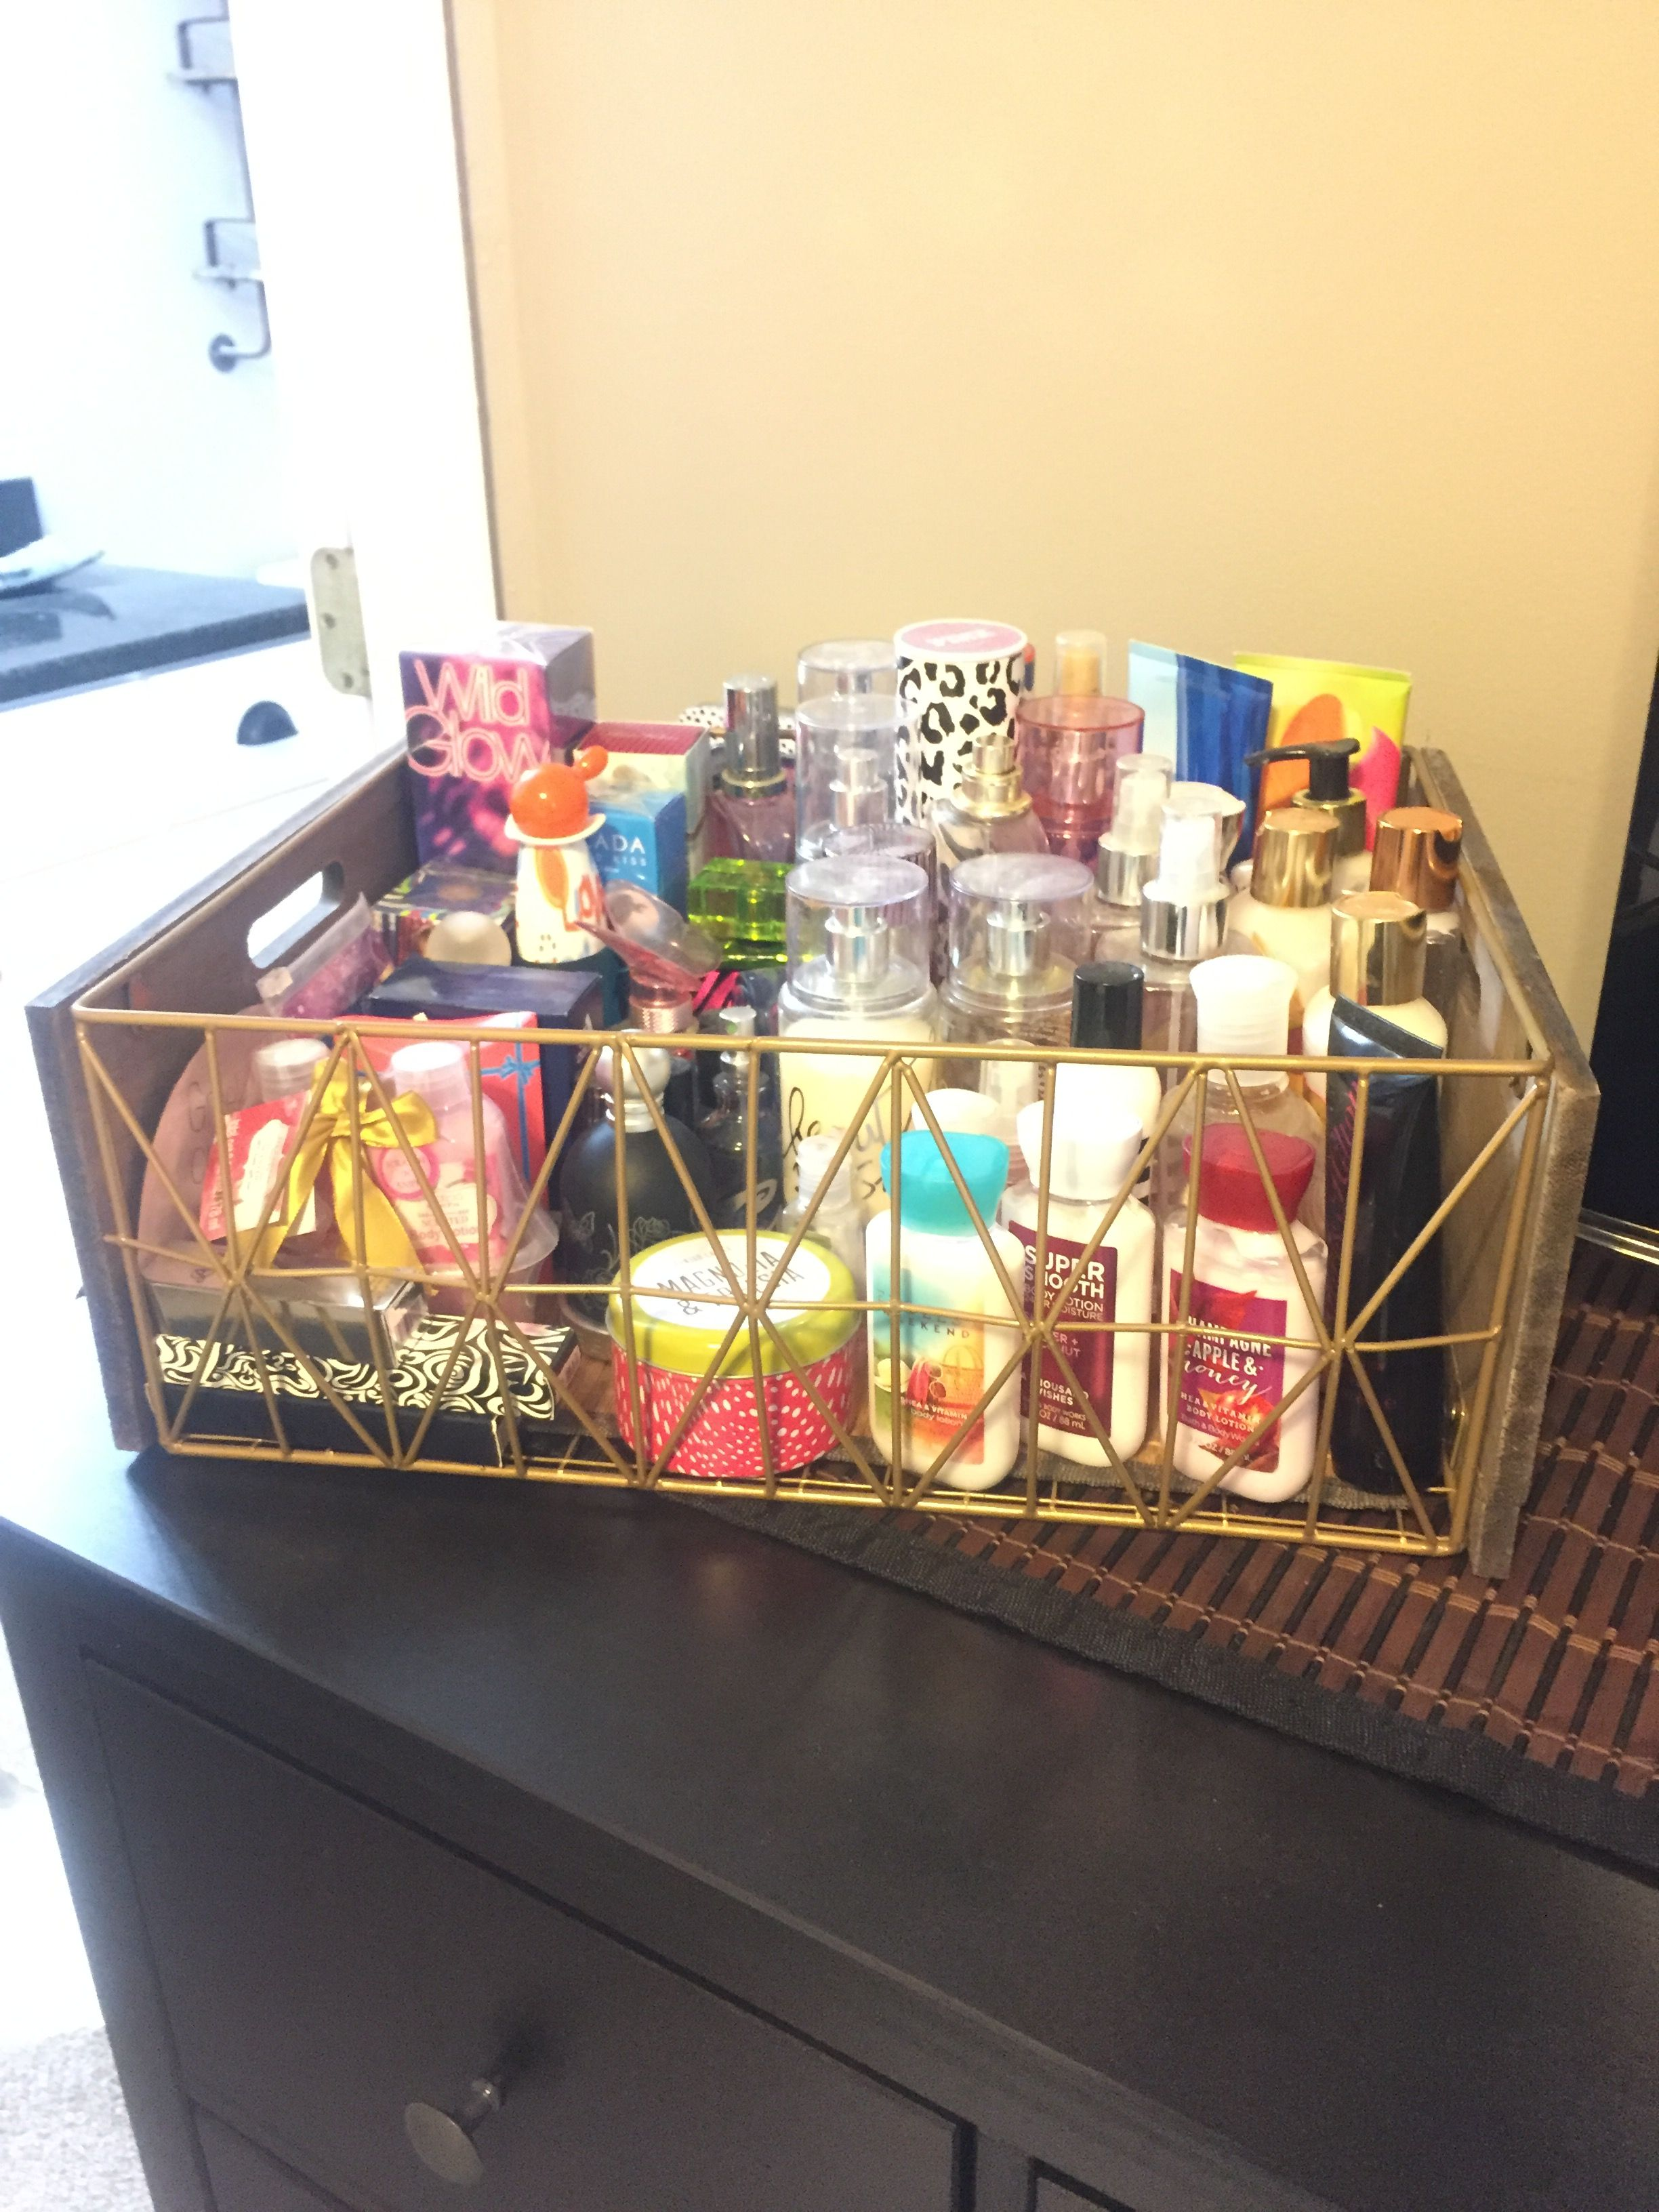 Easy Way To Organize Perfumes And Lotions Storage Organizingperfumes Perfume Organization Lotion Storage Perfume Storage